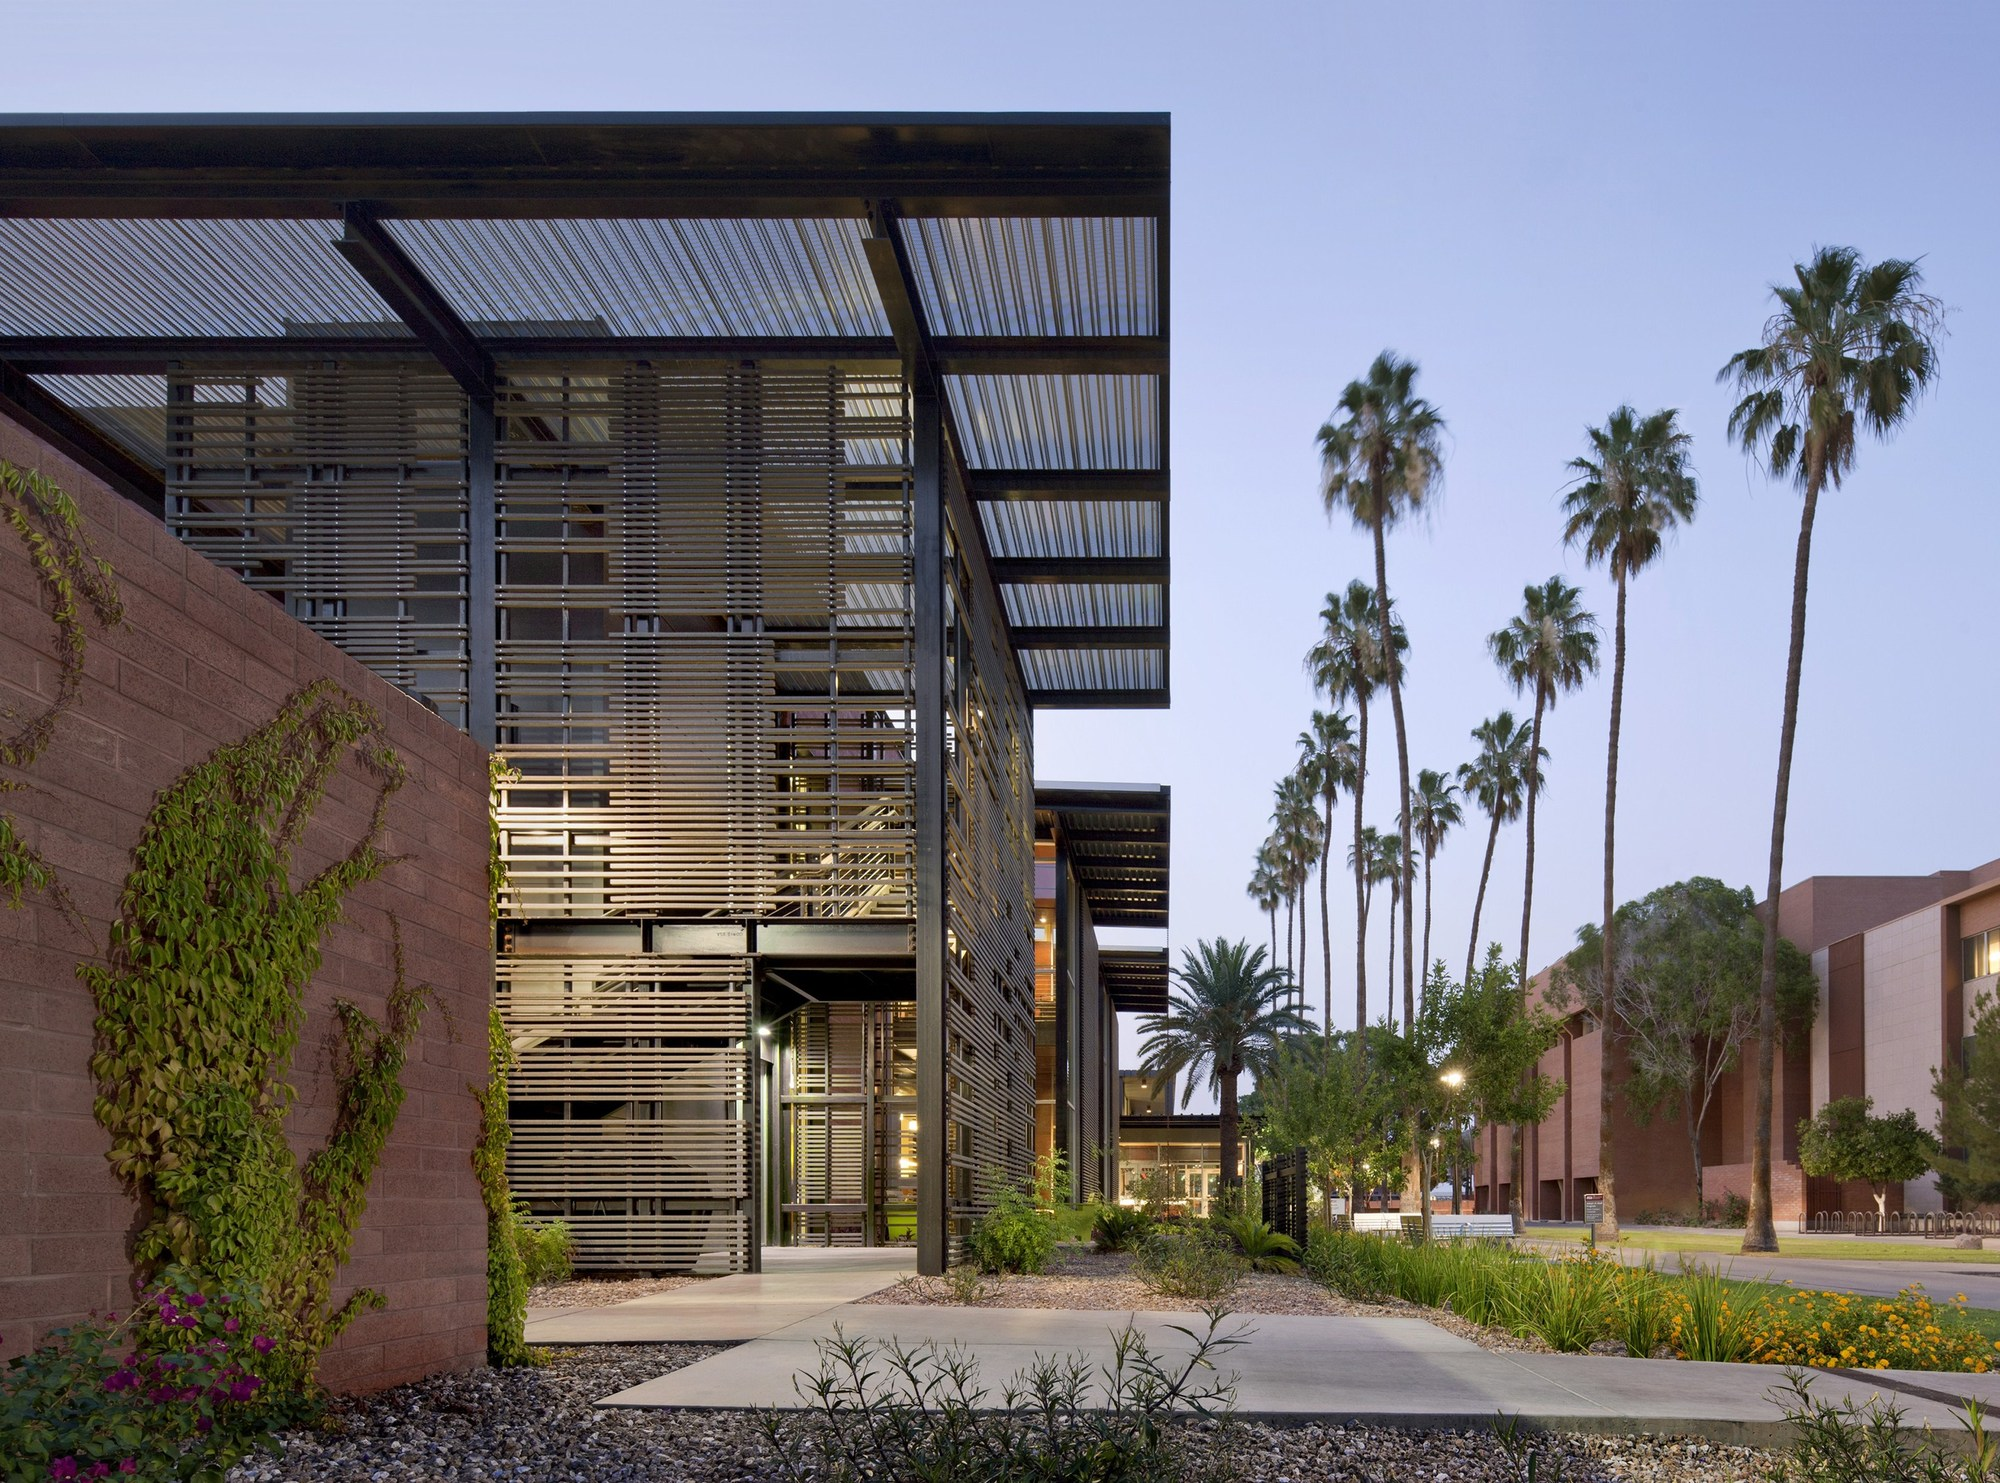 Asu health services building lake flato architects for Best material to build a house